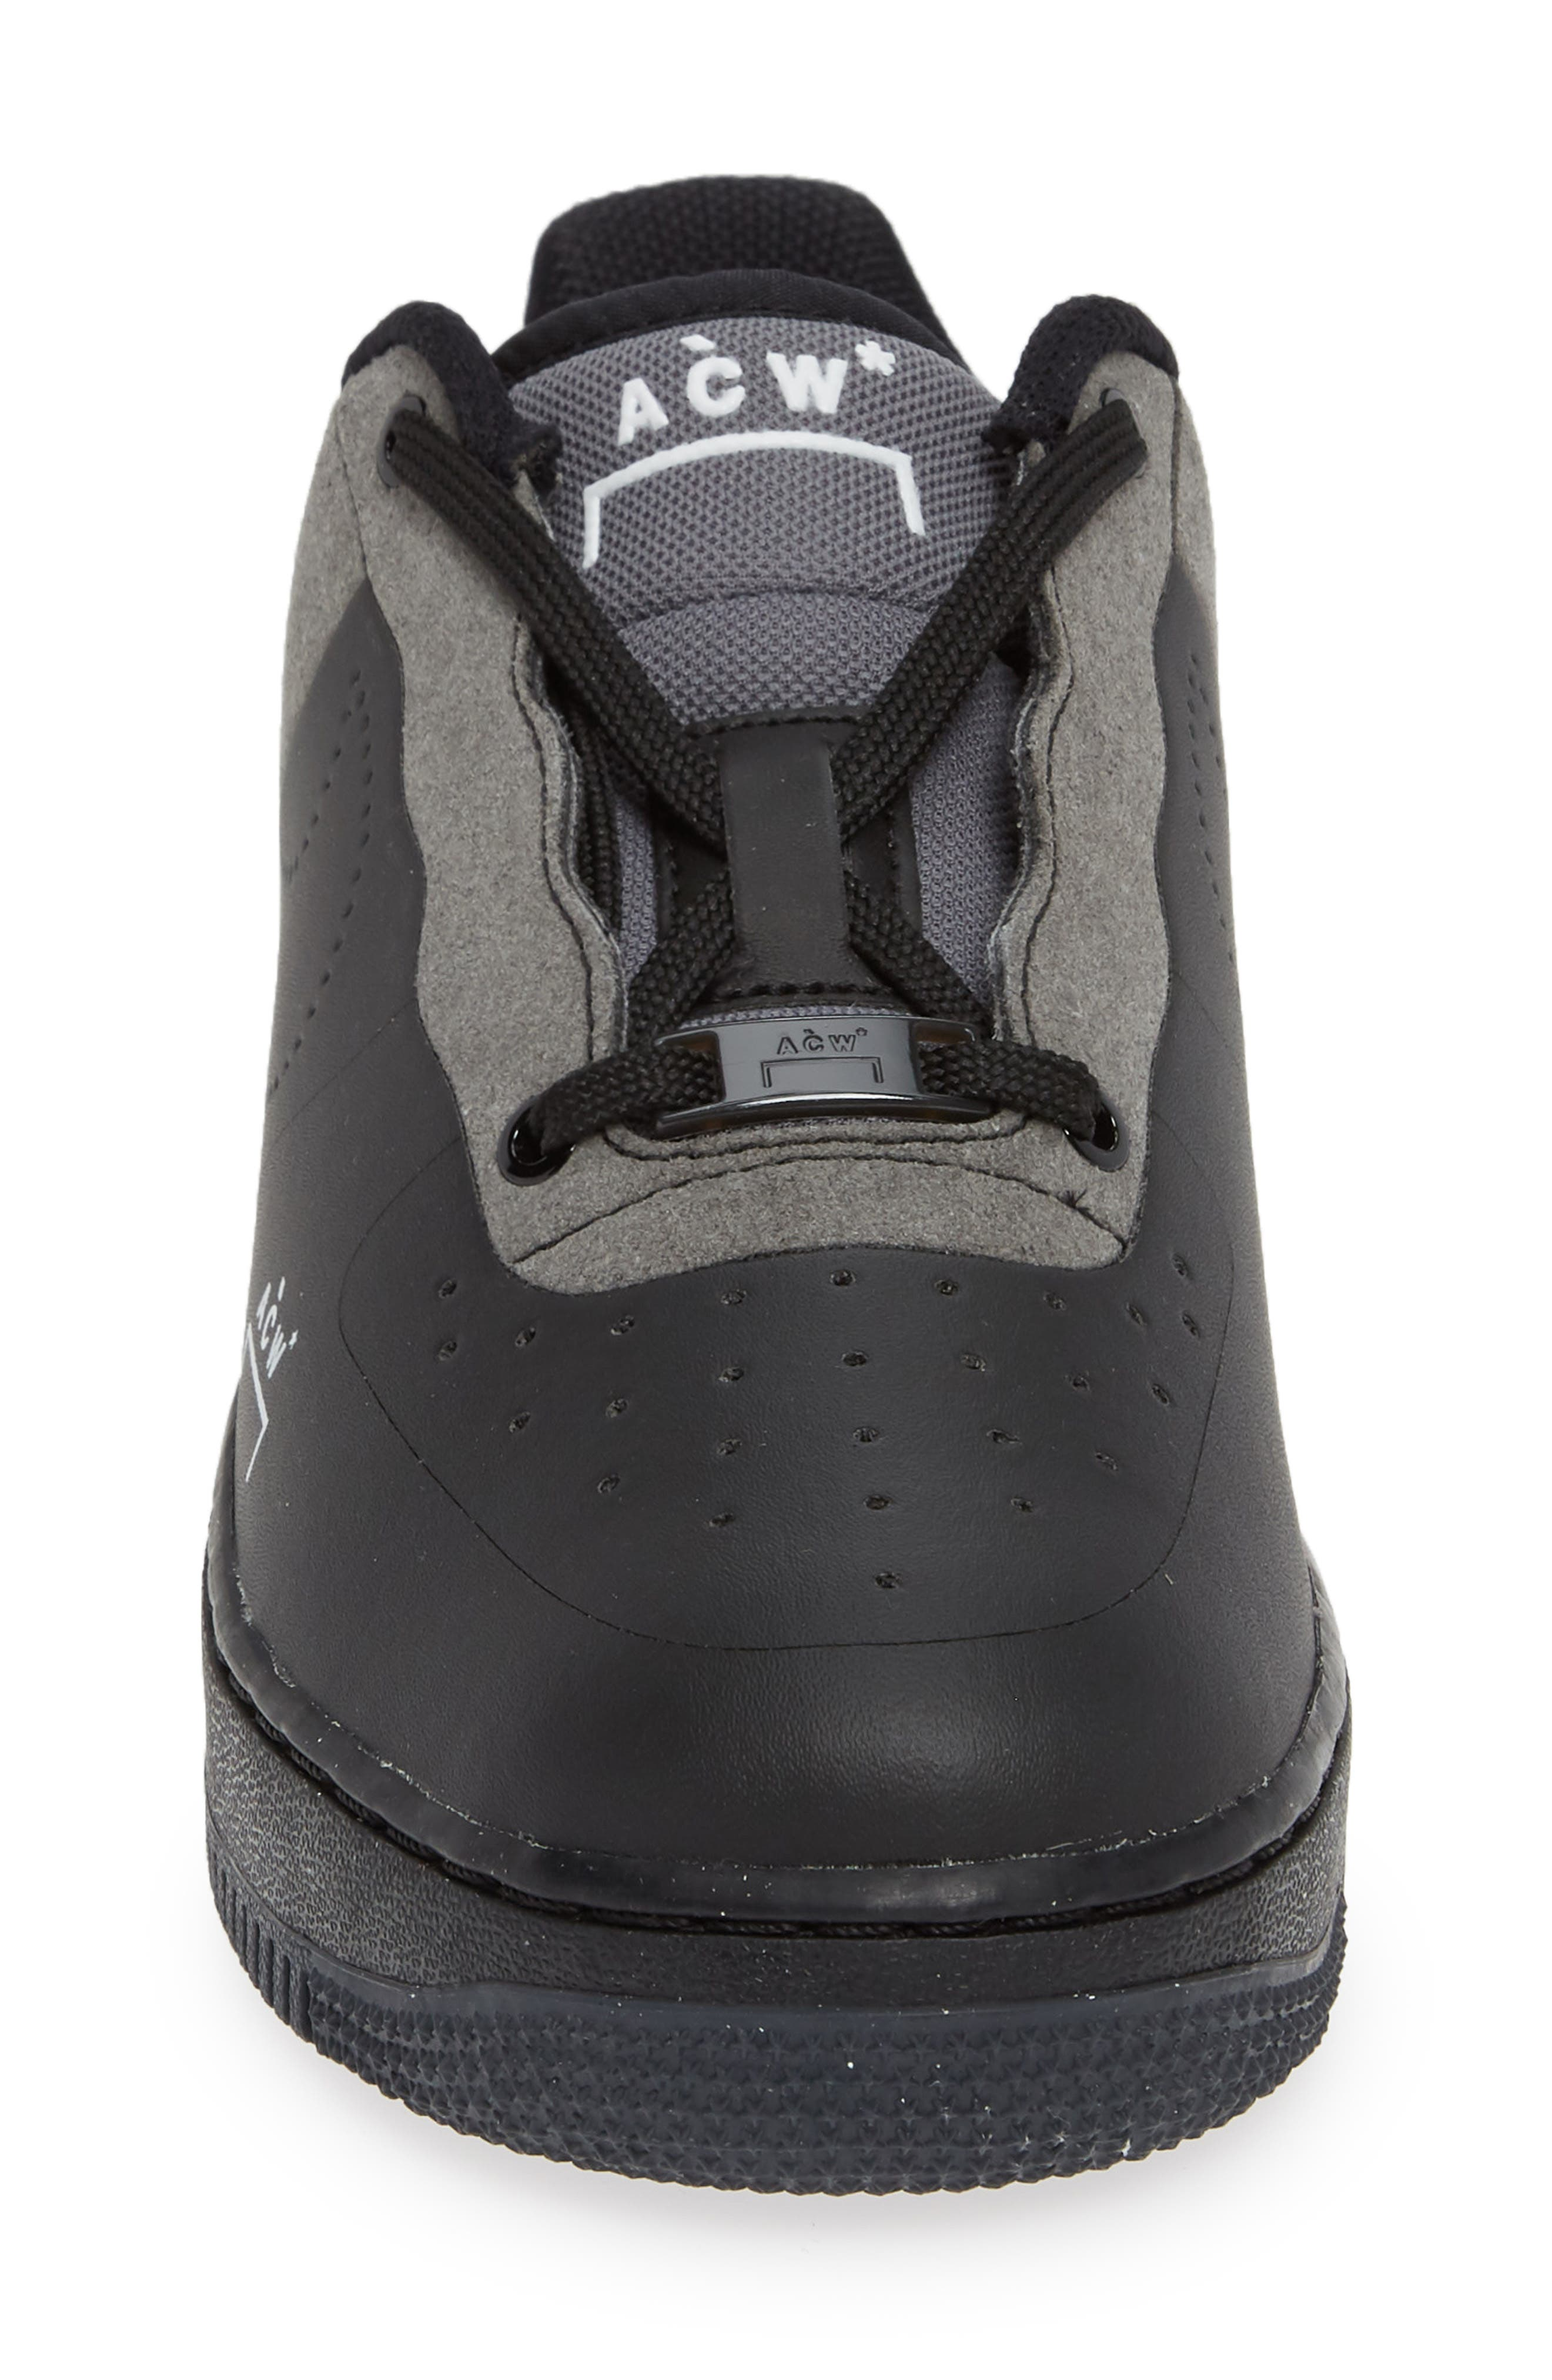 x A-COLD-WALL Air Force 1 '07 Sneaker,                             Alternate thumbnail 4, color,                             BLACK/ WHITE/ DARK GREY